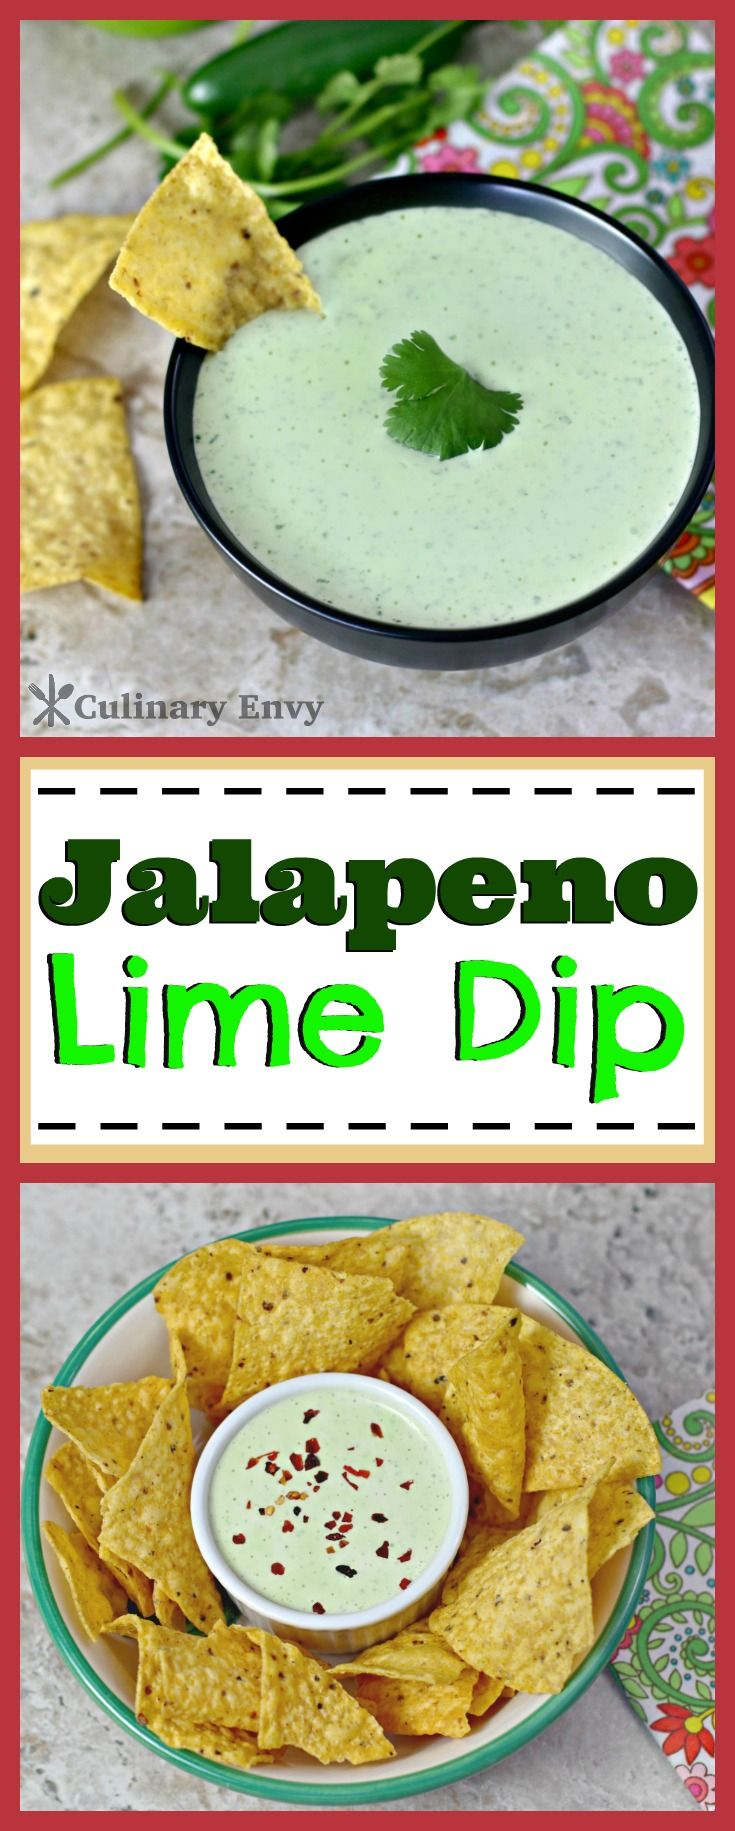 This Jalapeno Lime Dip is my MOST requested dip recipe!  It is always the HIT of the Party!  Takes 5 minutes to make and uses fresh simple ingredients!  Click to read more!